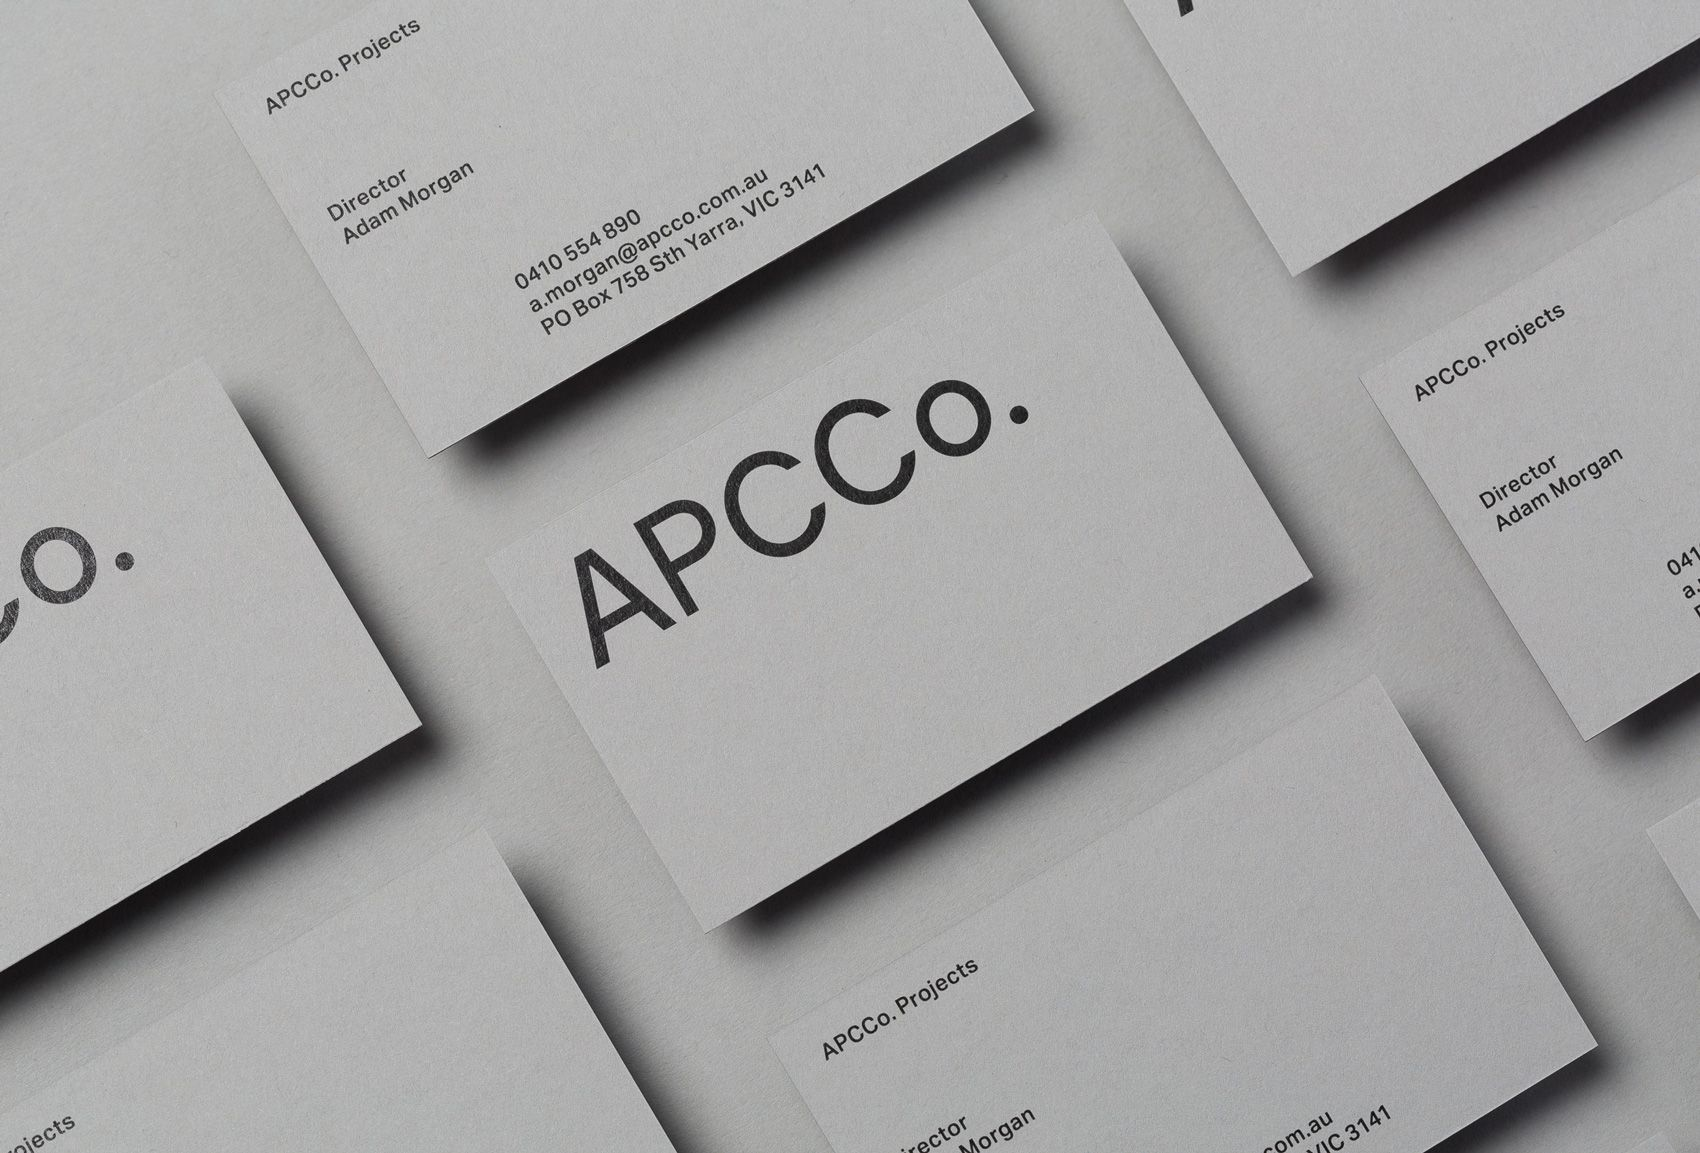 Picture of 4 designed by the colour club for the project apcco picture of 4 designed by the colour club for the project apcco projects published on the visual journal in date 12 september 2017 reheart Image collections